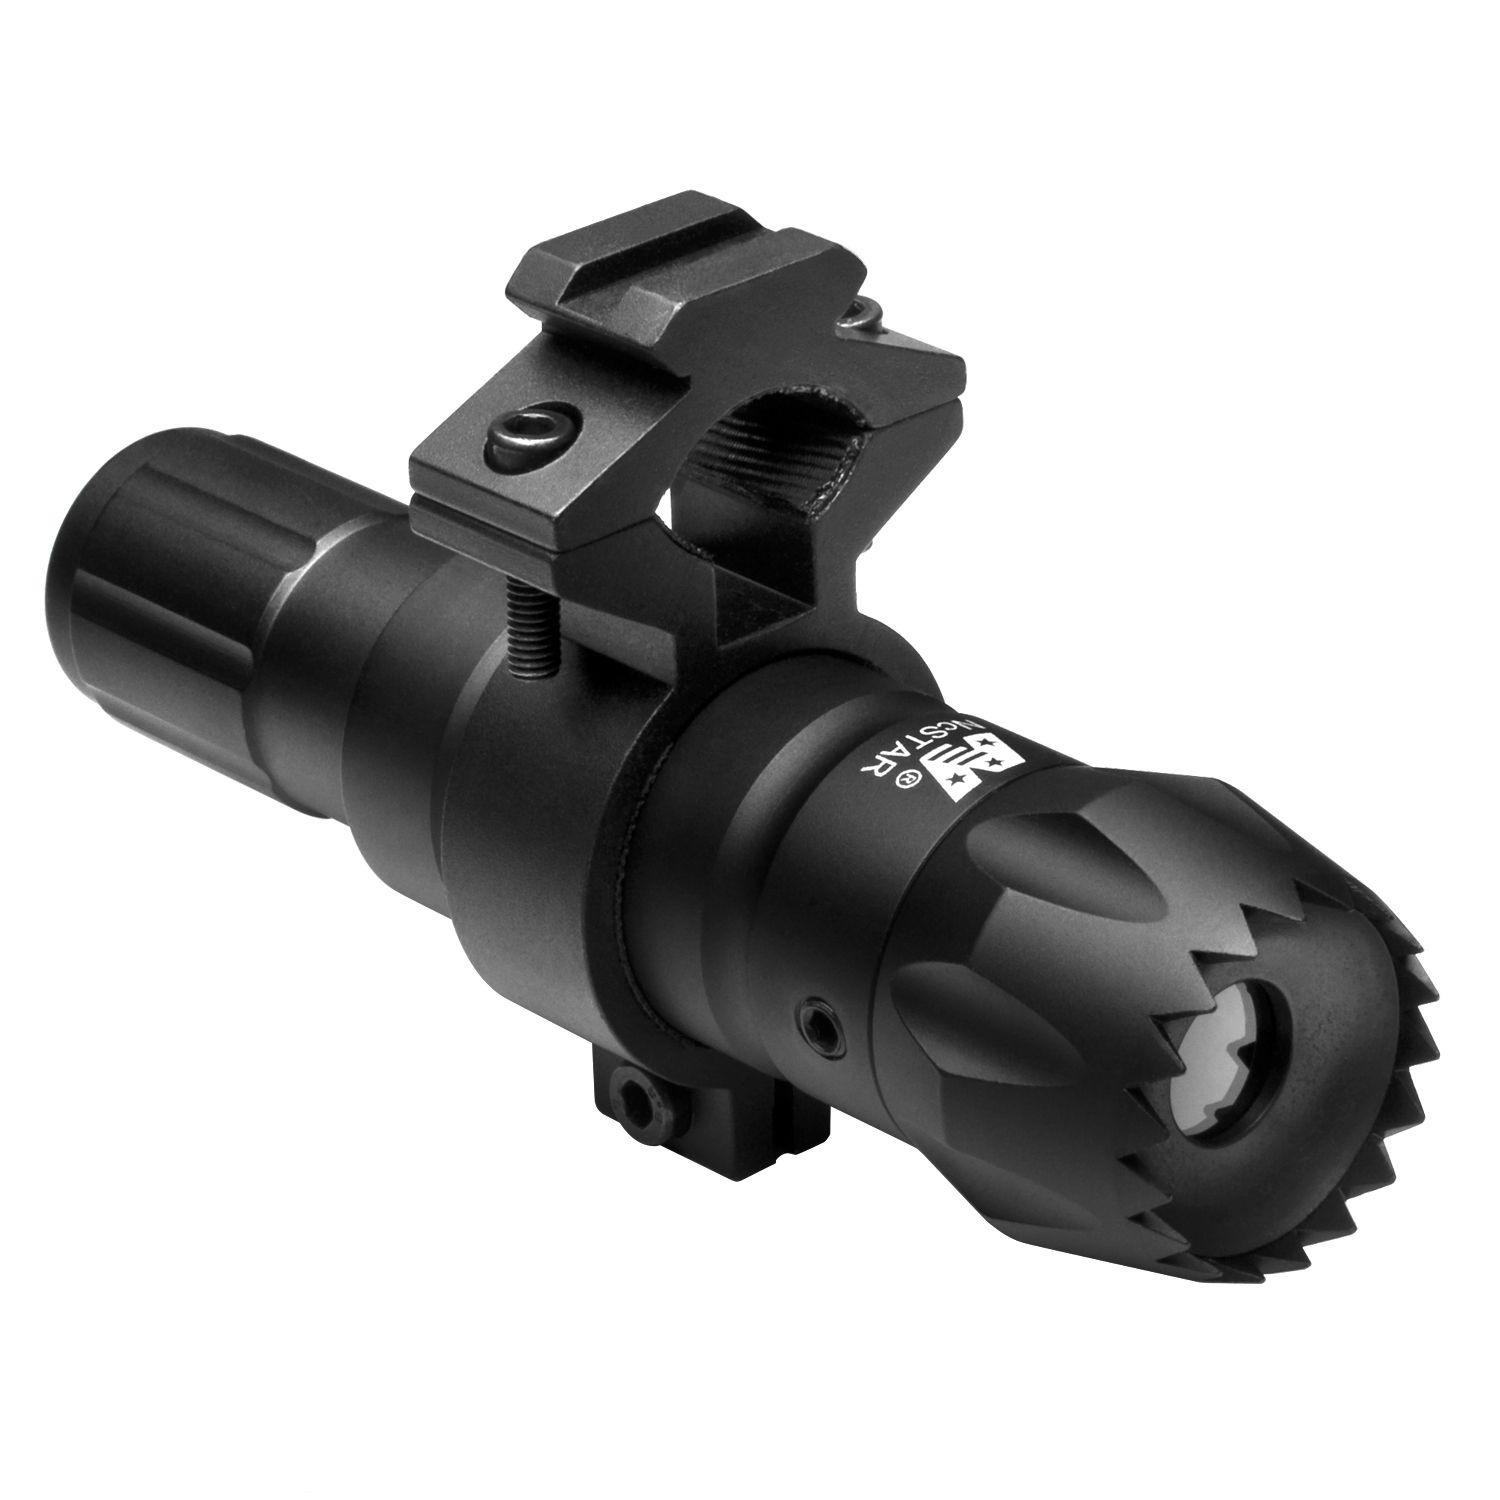 Ncstar Red Green Laser With Universal Rifle Barrel Mount